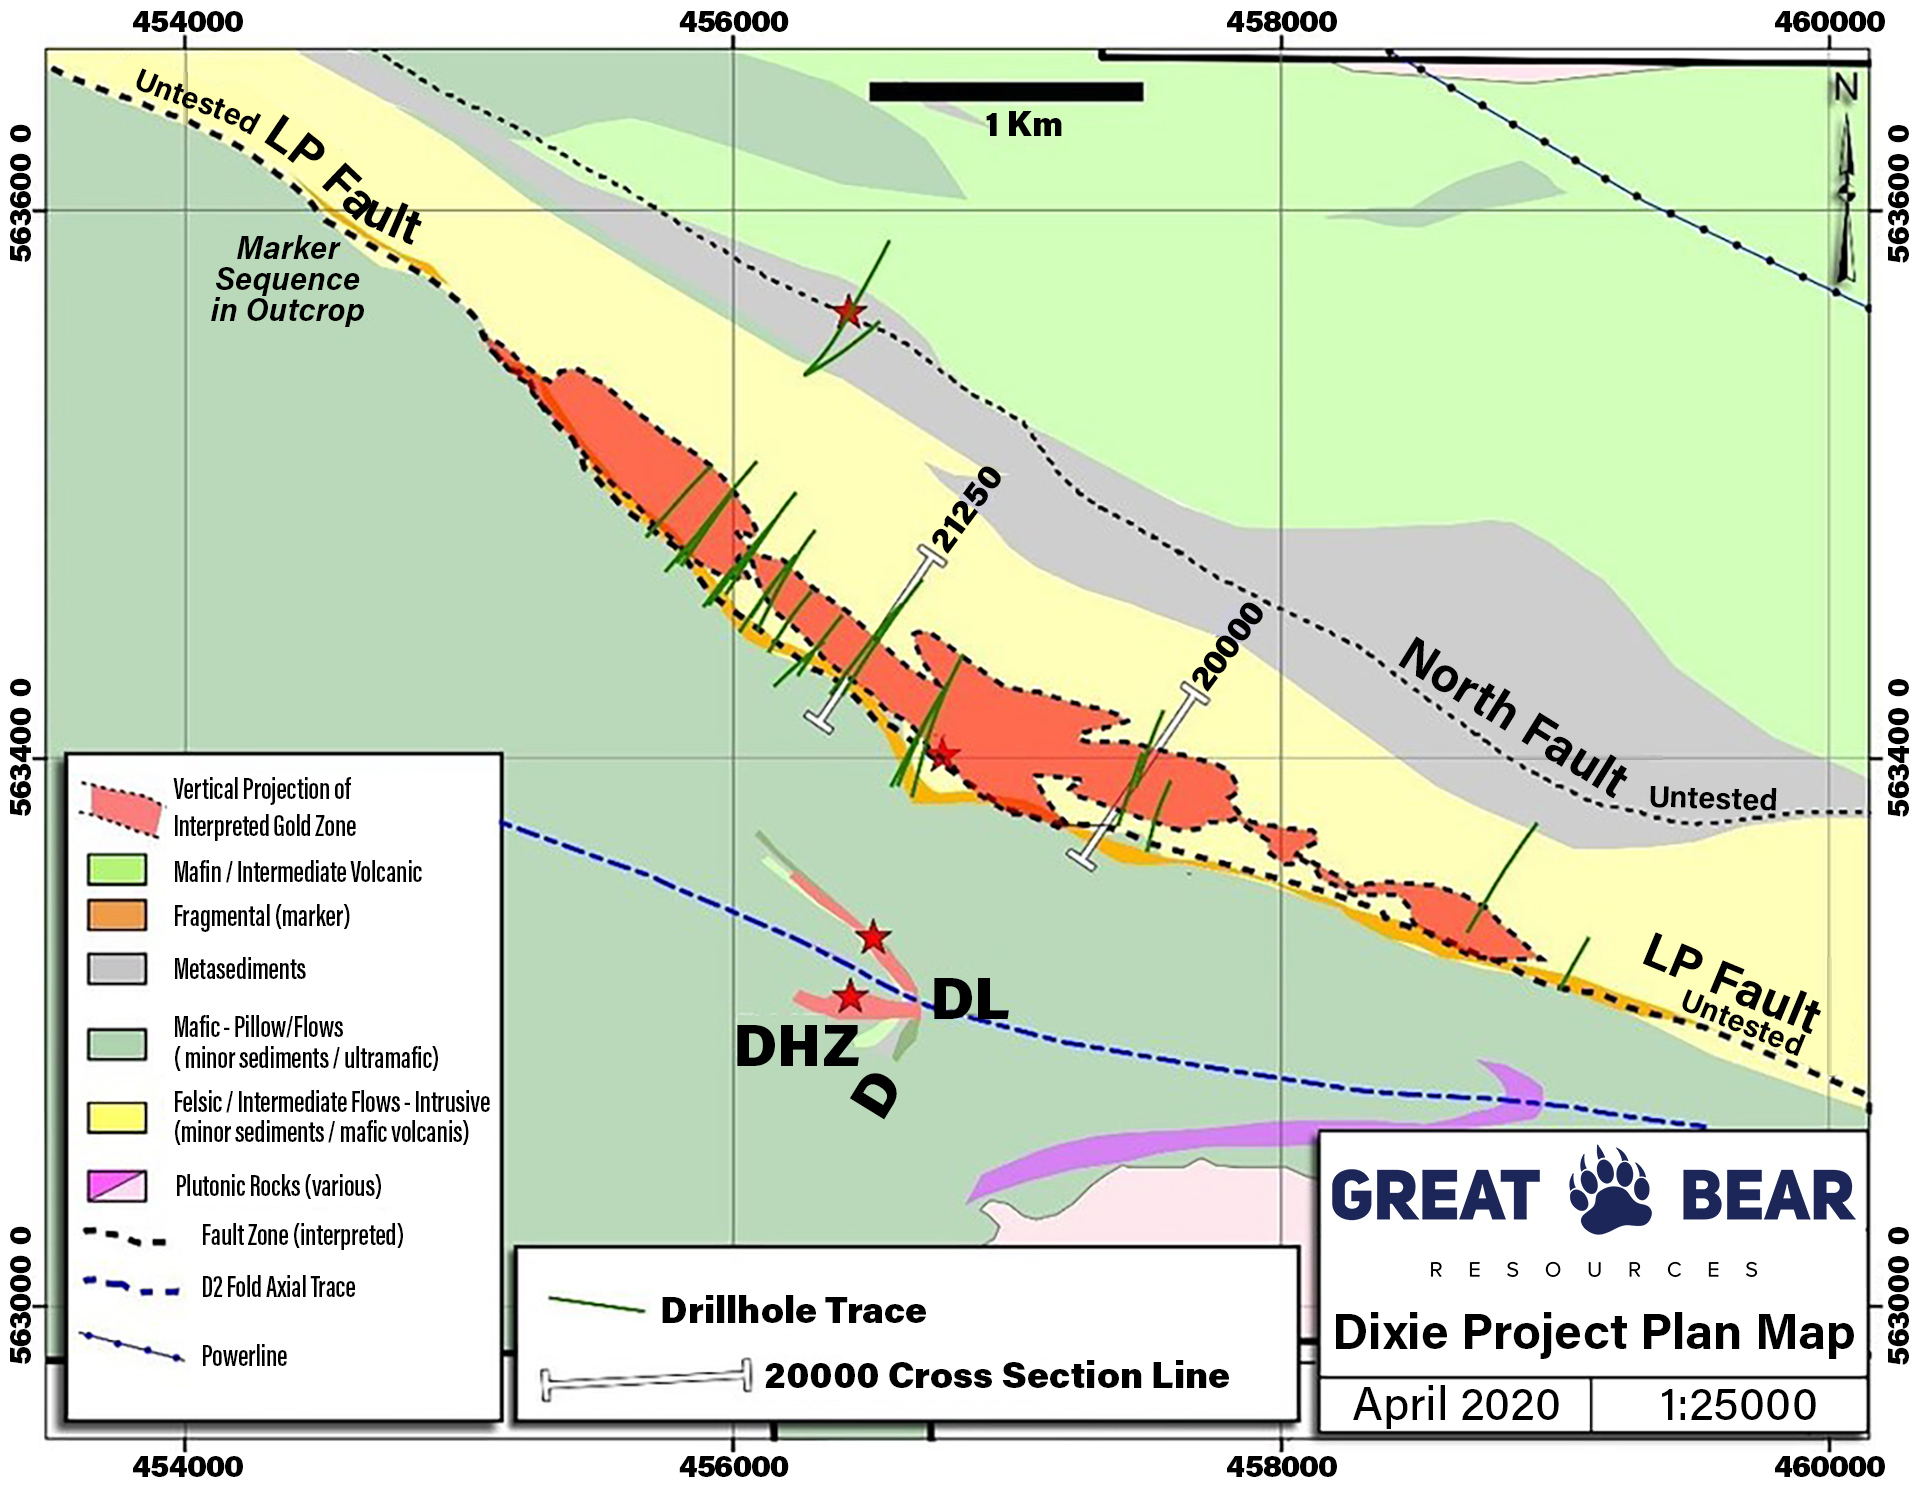 great-bear-dixie-project